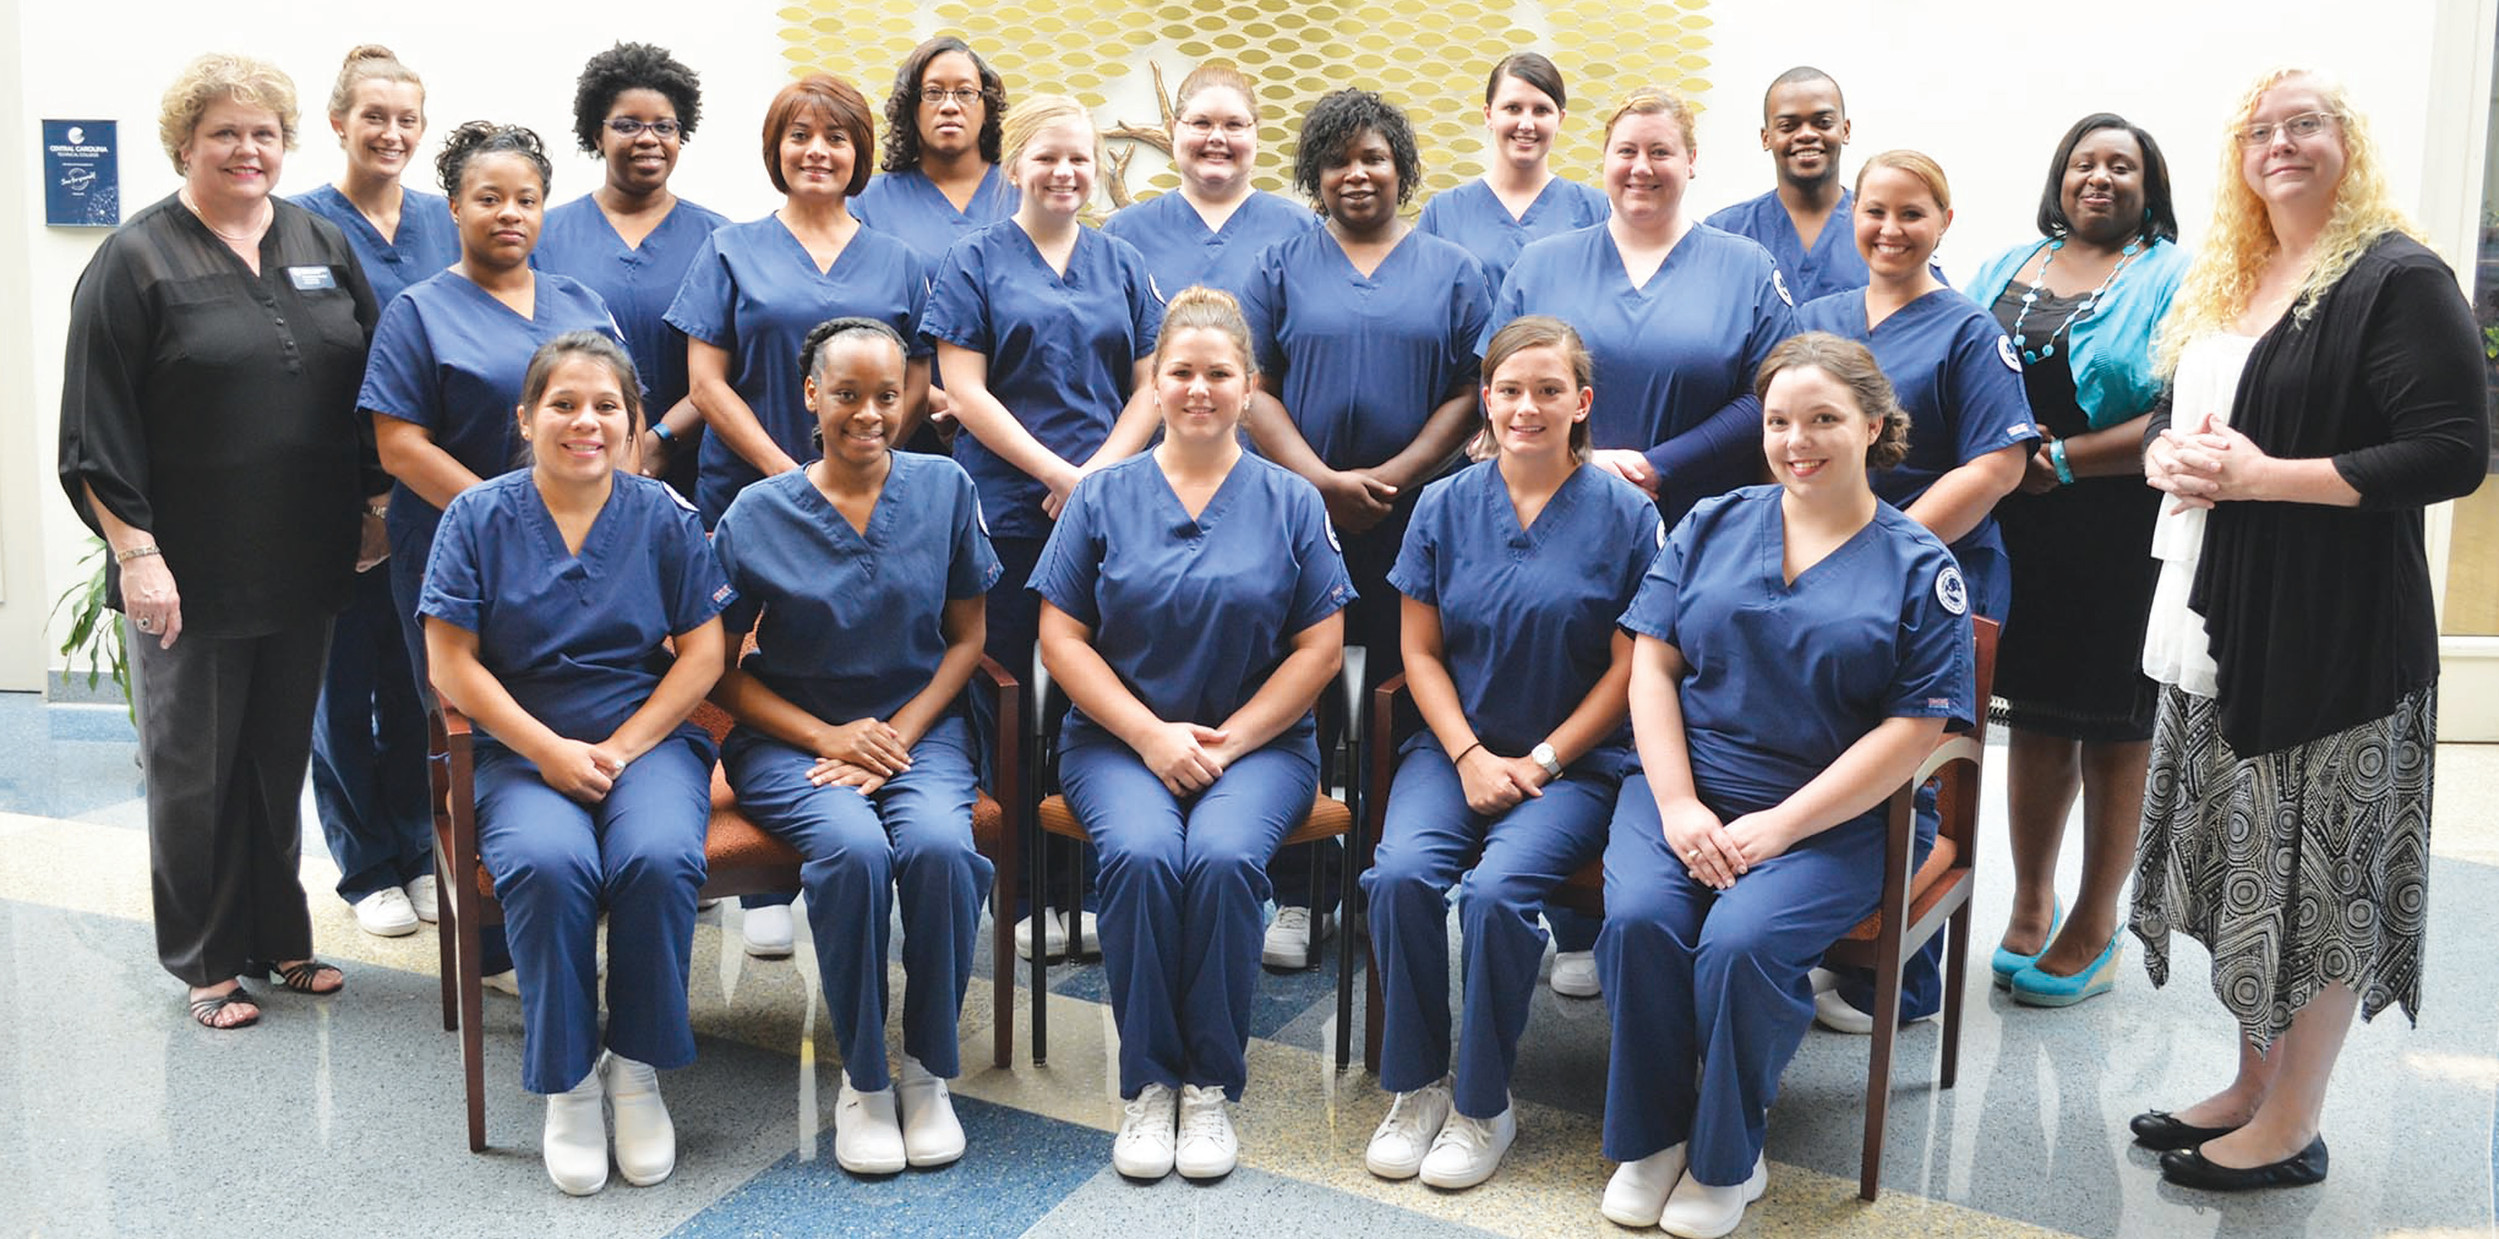 PHOTOS PROVIDEDCentral Carolina Technical College pinned 18 medical assistants at a ceremony held on Aug. 1 at the Health Sciences Center.